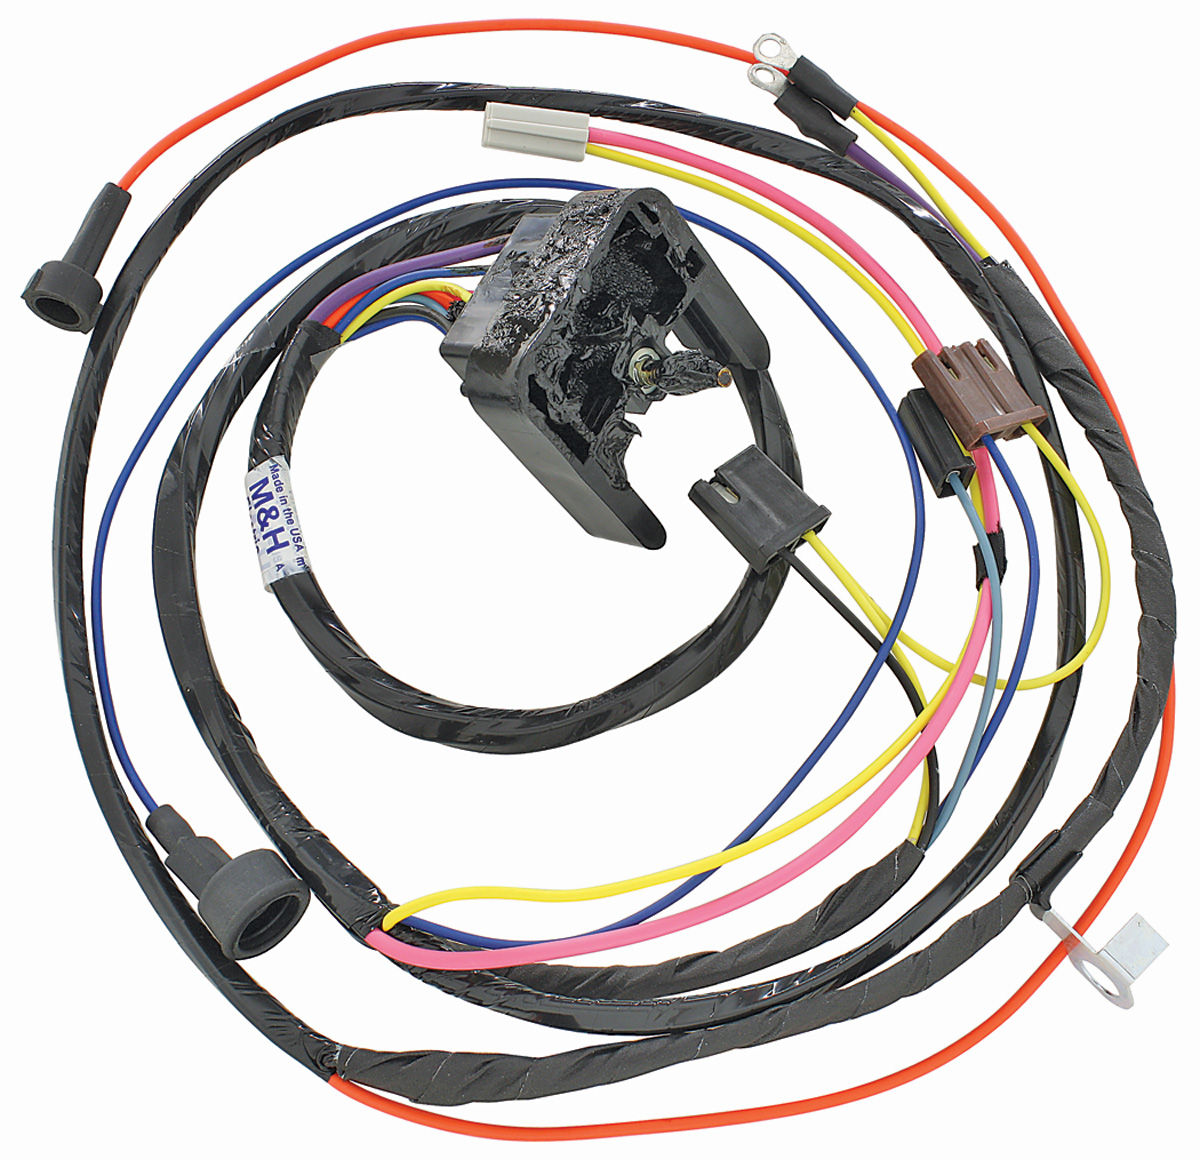 hight resolution of 1968 69 chevelle engine harness 396 hei w warning lights